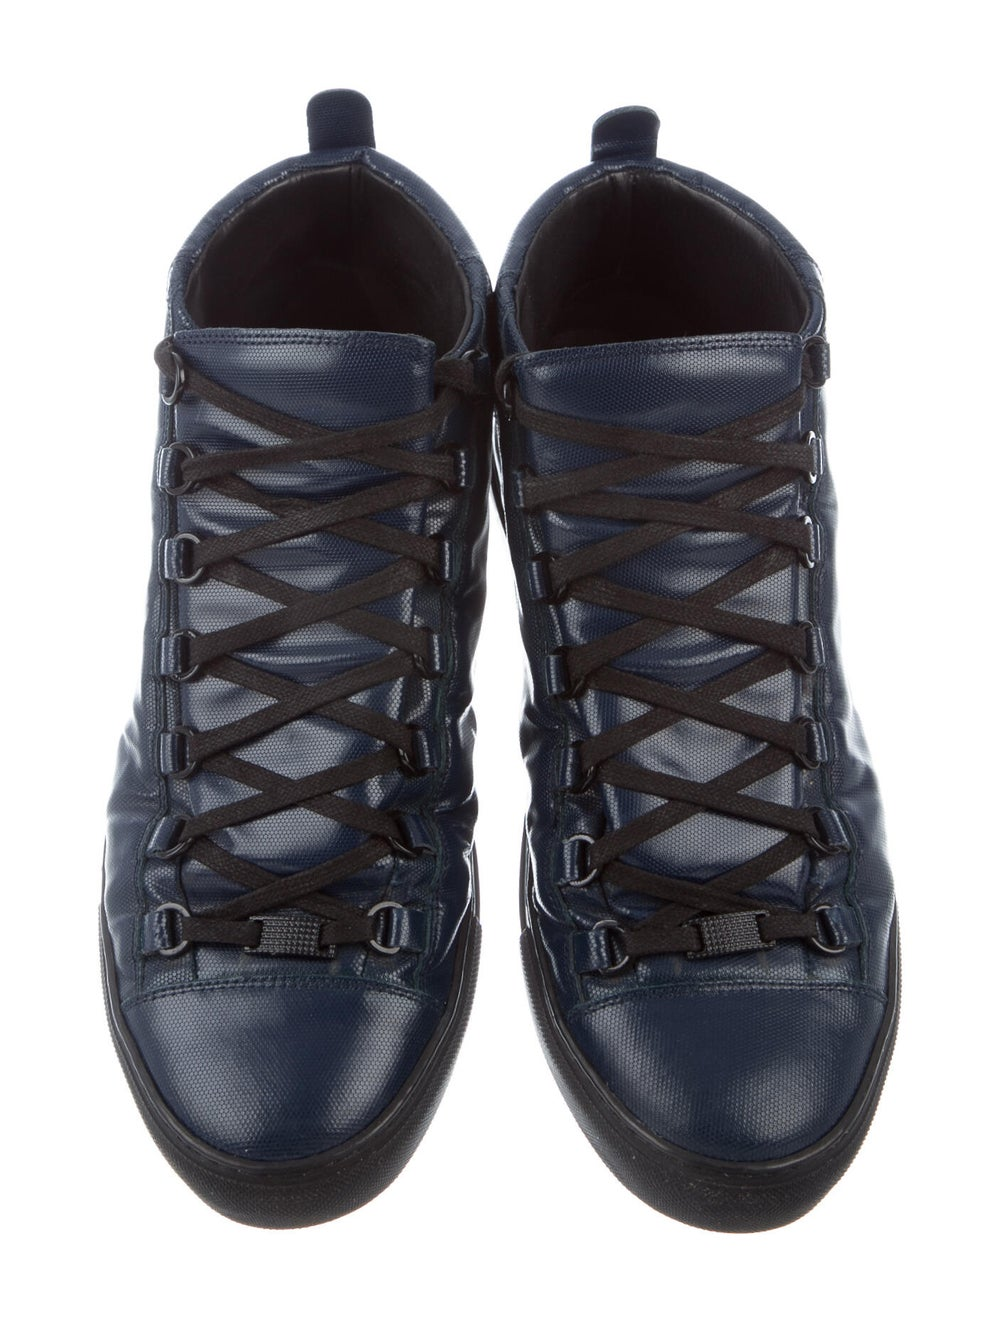 Balenciaga Leather Sneakers Blue - image 3